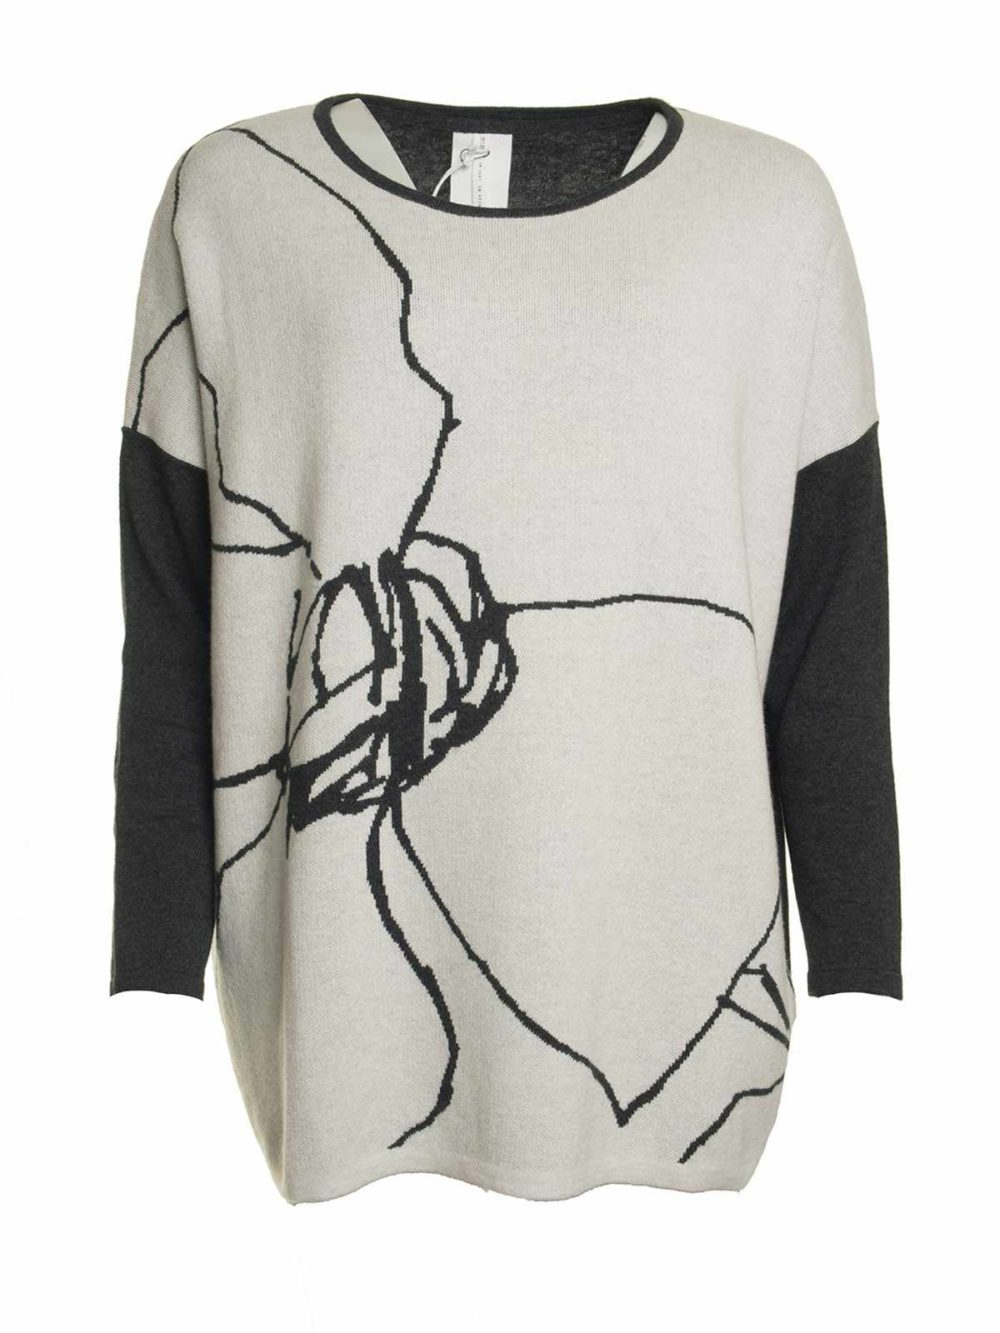 Flower Sketch Jumper Thought Clothing Katie Kerr Women's Clothing